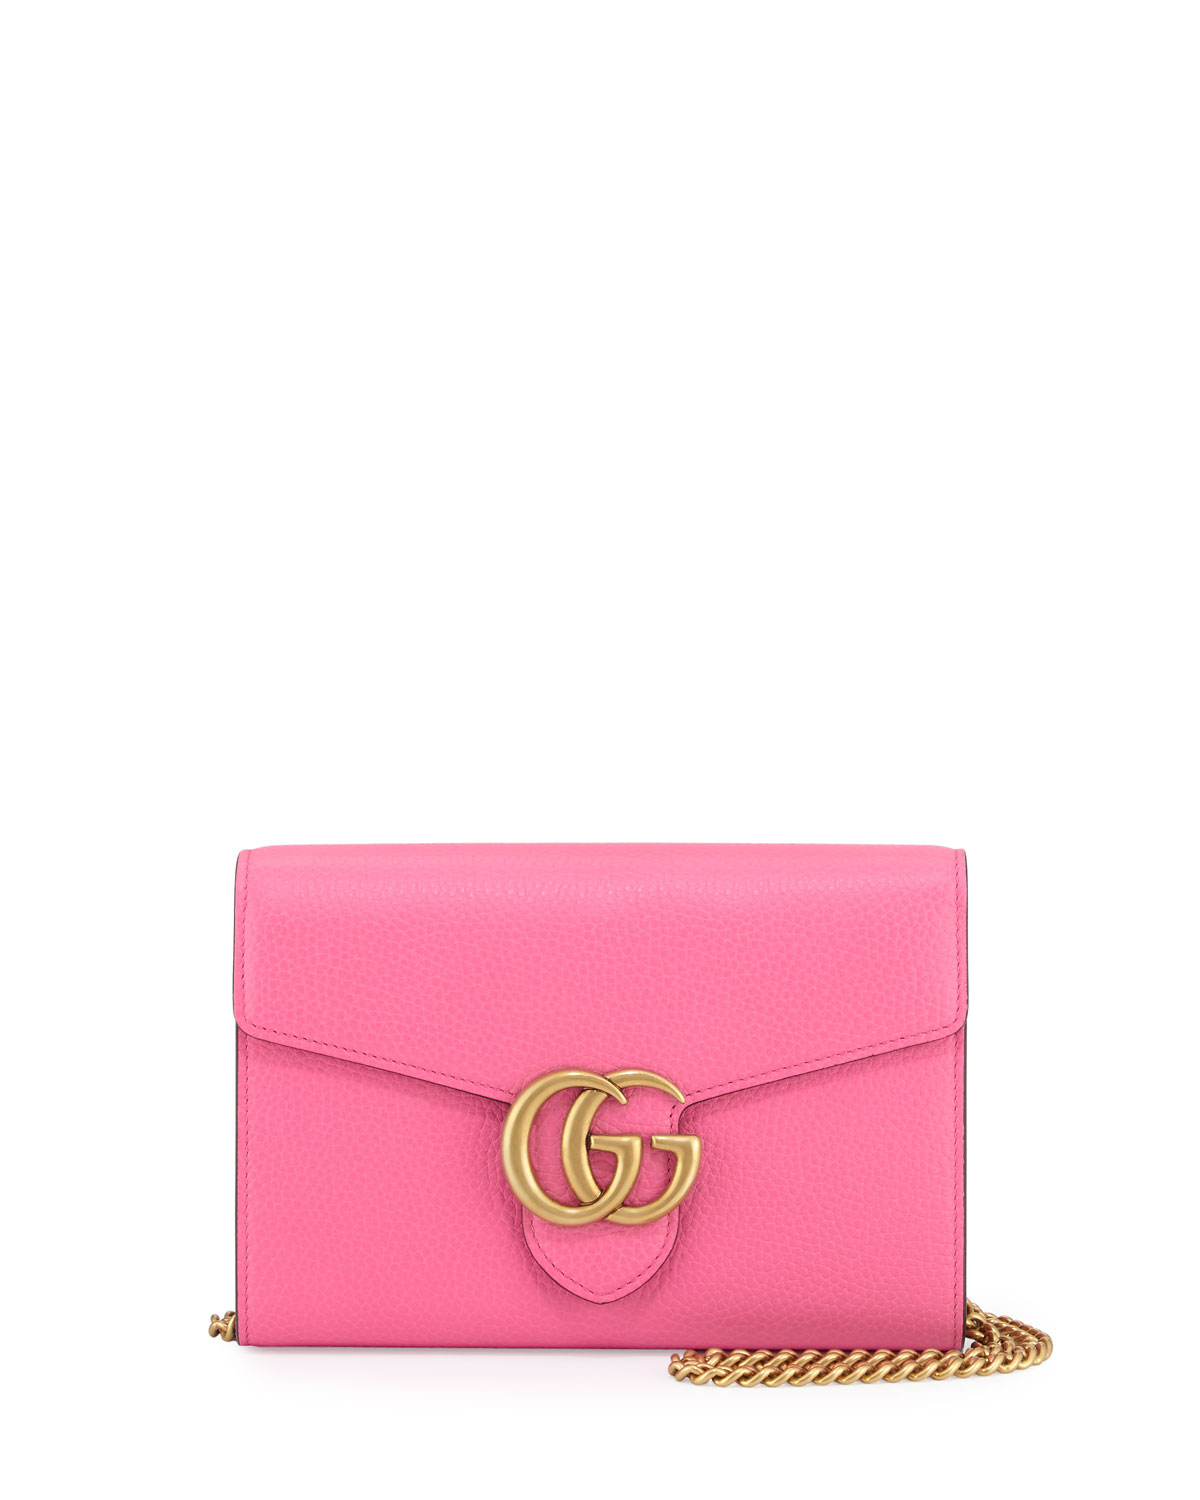 d4751db2a2dc4 Gucci GG Marmont Leather Mini Chain Bag